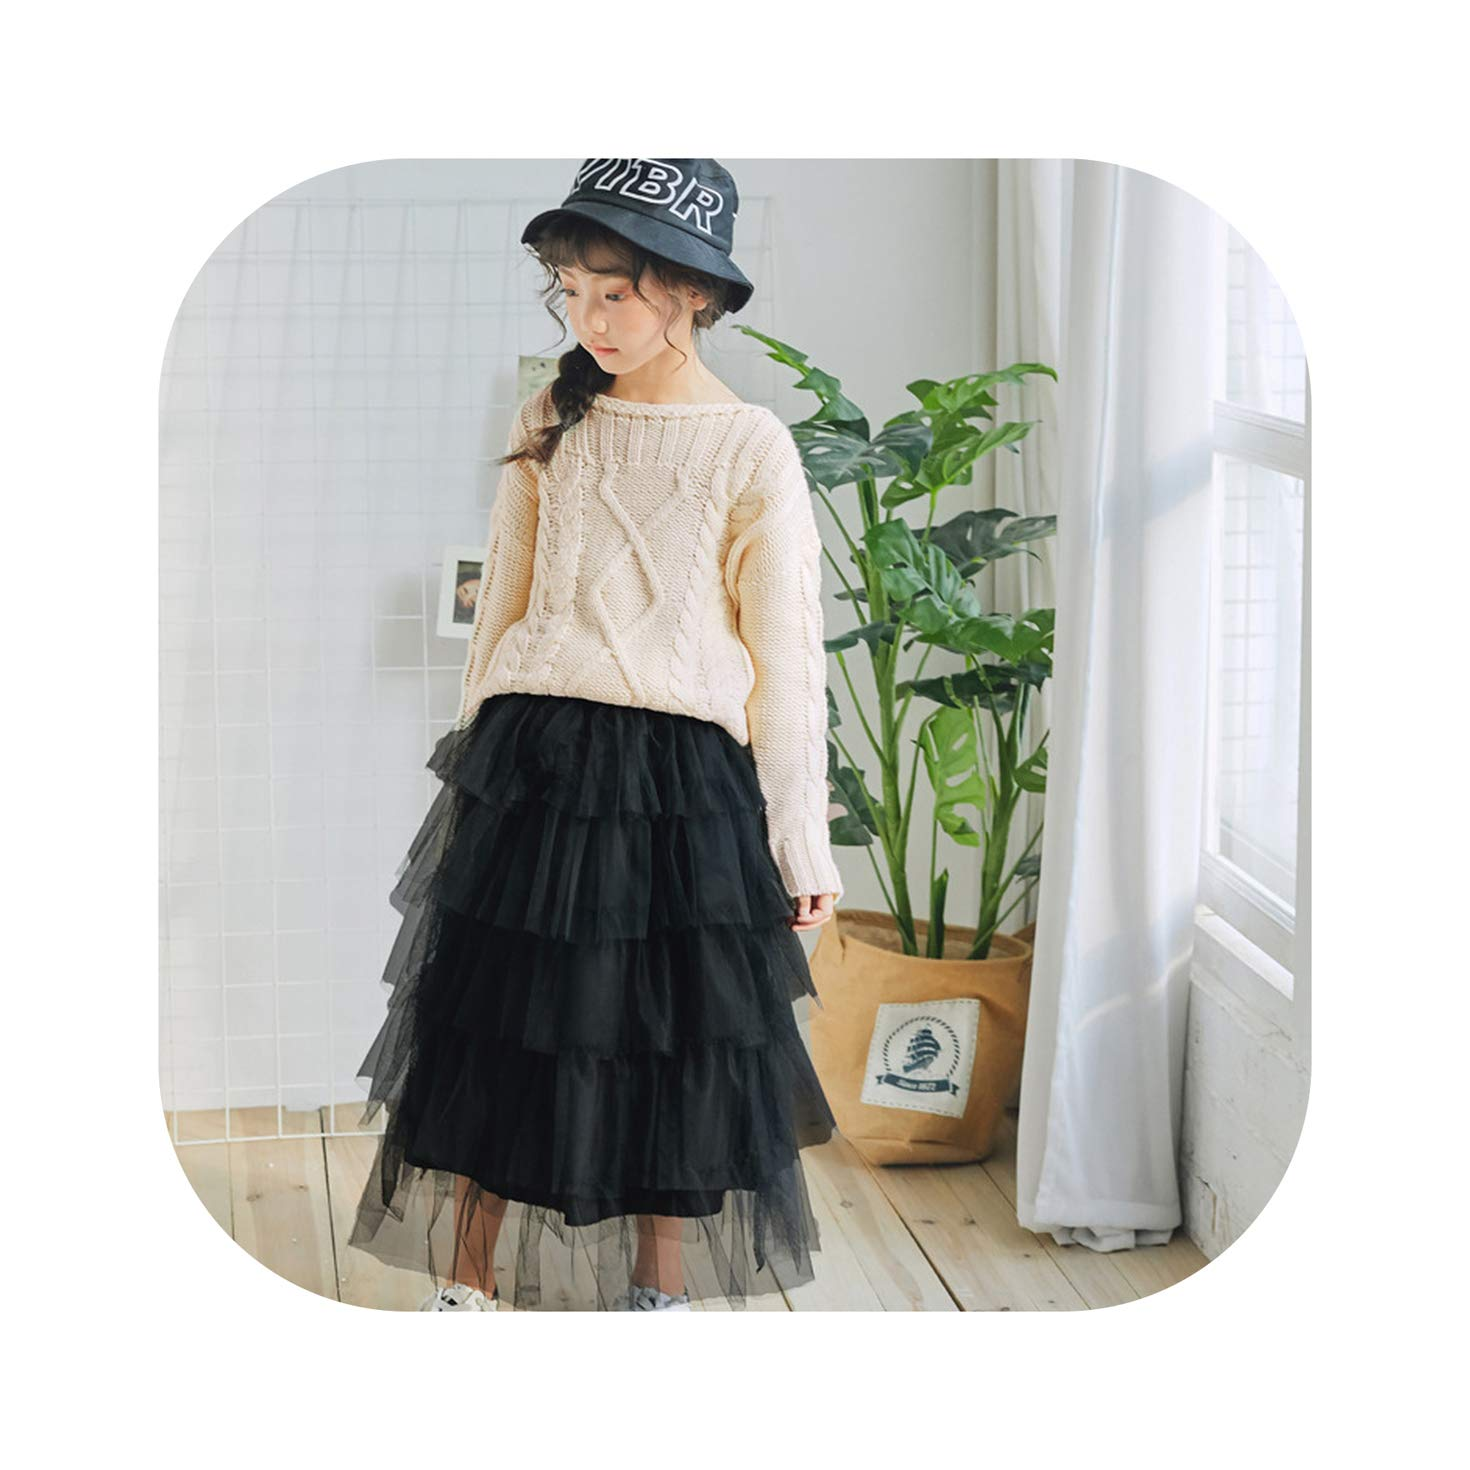 Girls Long Skirt Baby Tulle Ball Gown Kids Beautiful Skirts Fashion Child Party Casual Long Skirts in Spring Autumn Size 2-13T,Long Skirt White,9